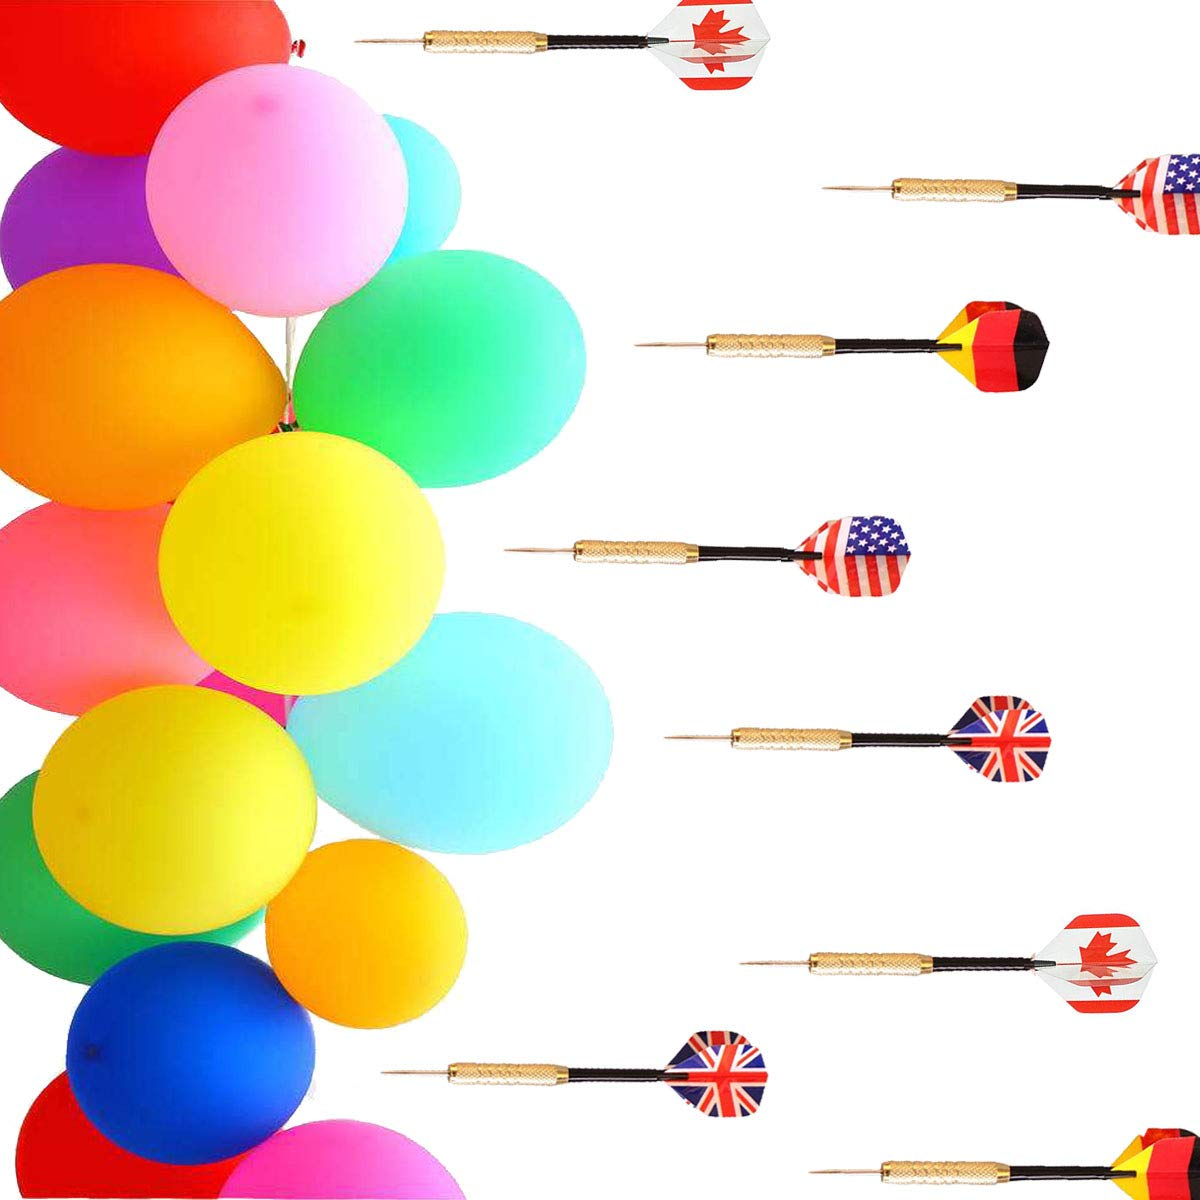 """500 Pcs Balloon Darts Carnival Game - 6"""" Latex Balloon Game Water Balloons and 8 Pcs Plastic Darts Bundle for Birthday Party Games, Outdoor Carnival Pop Party"""